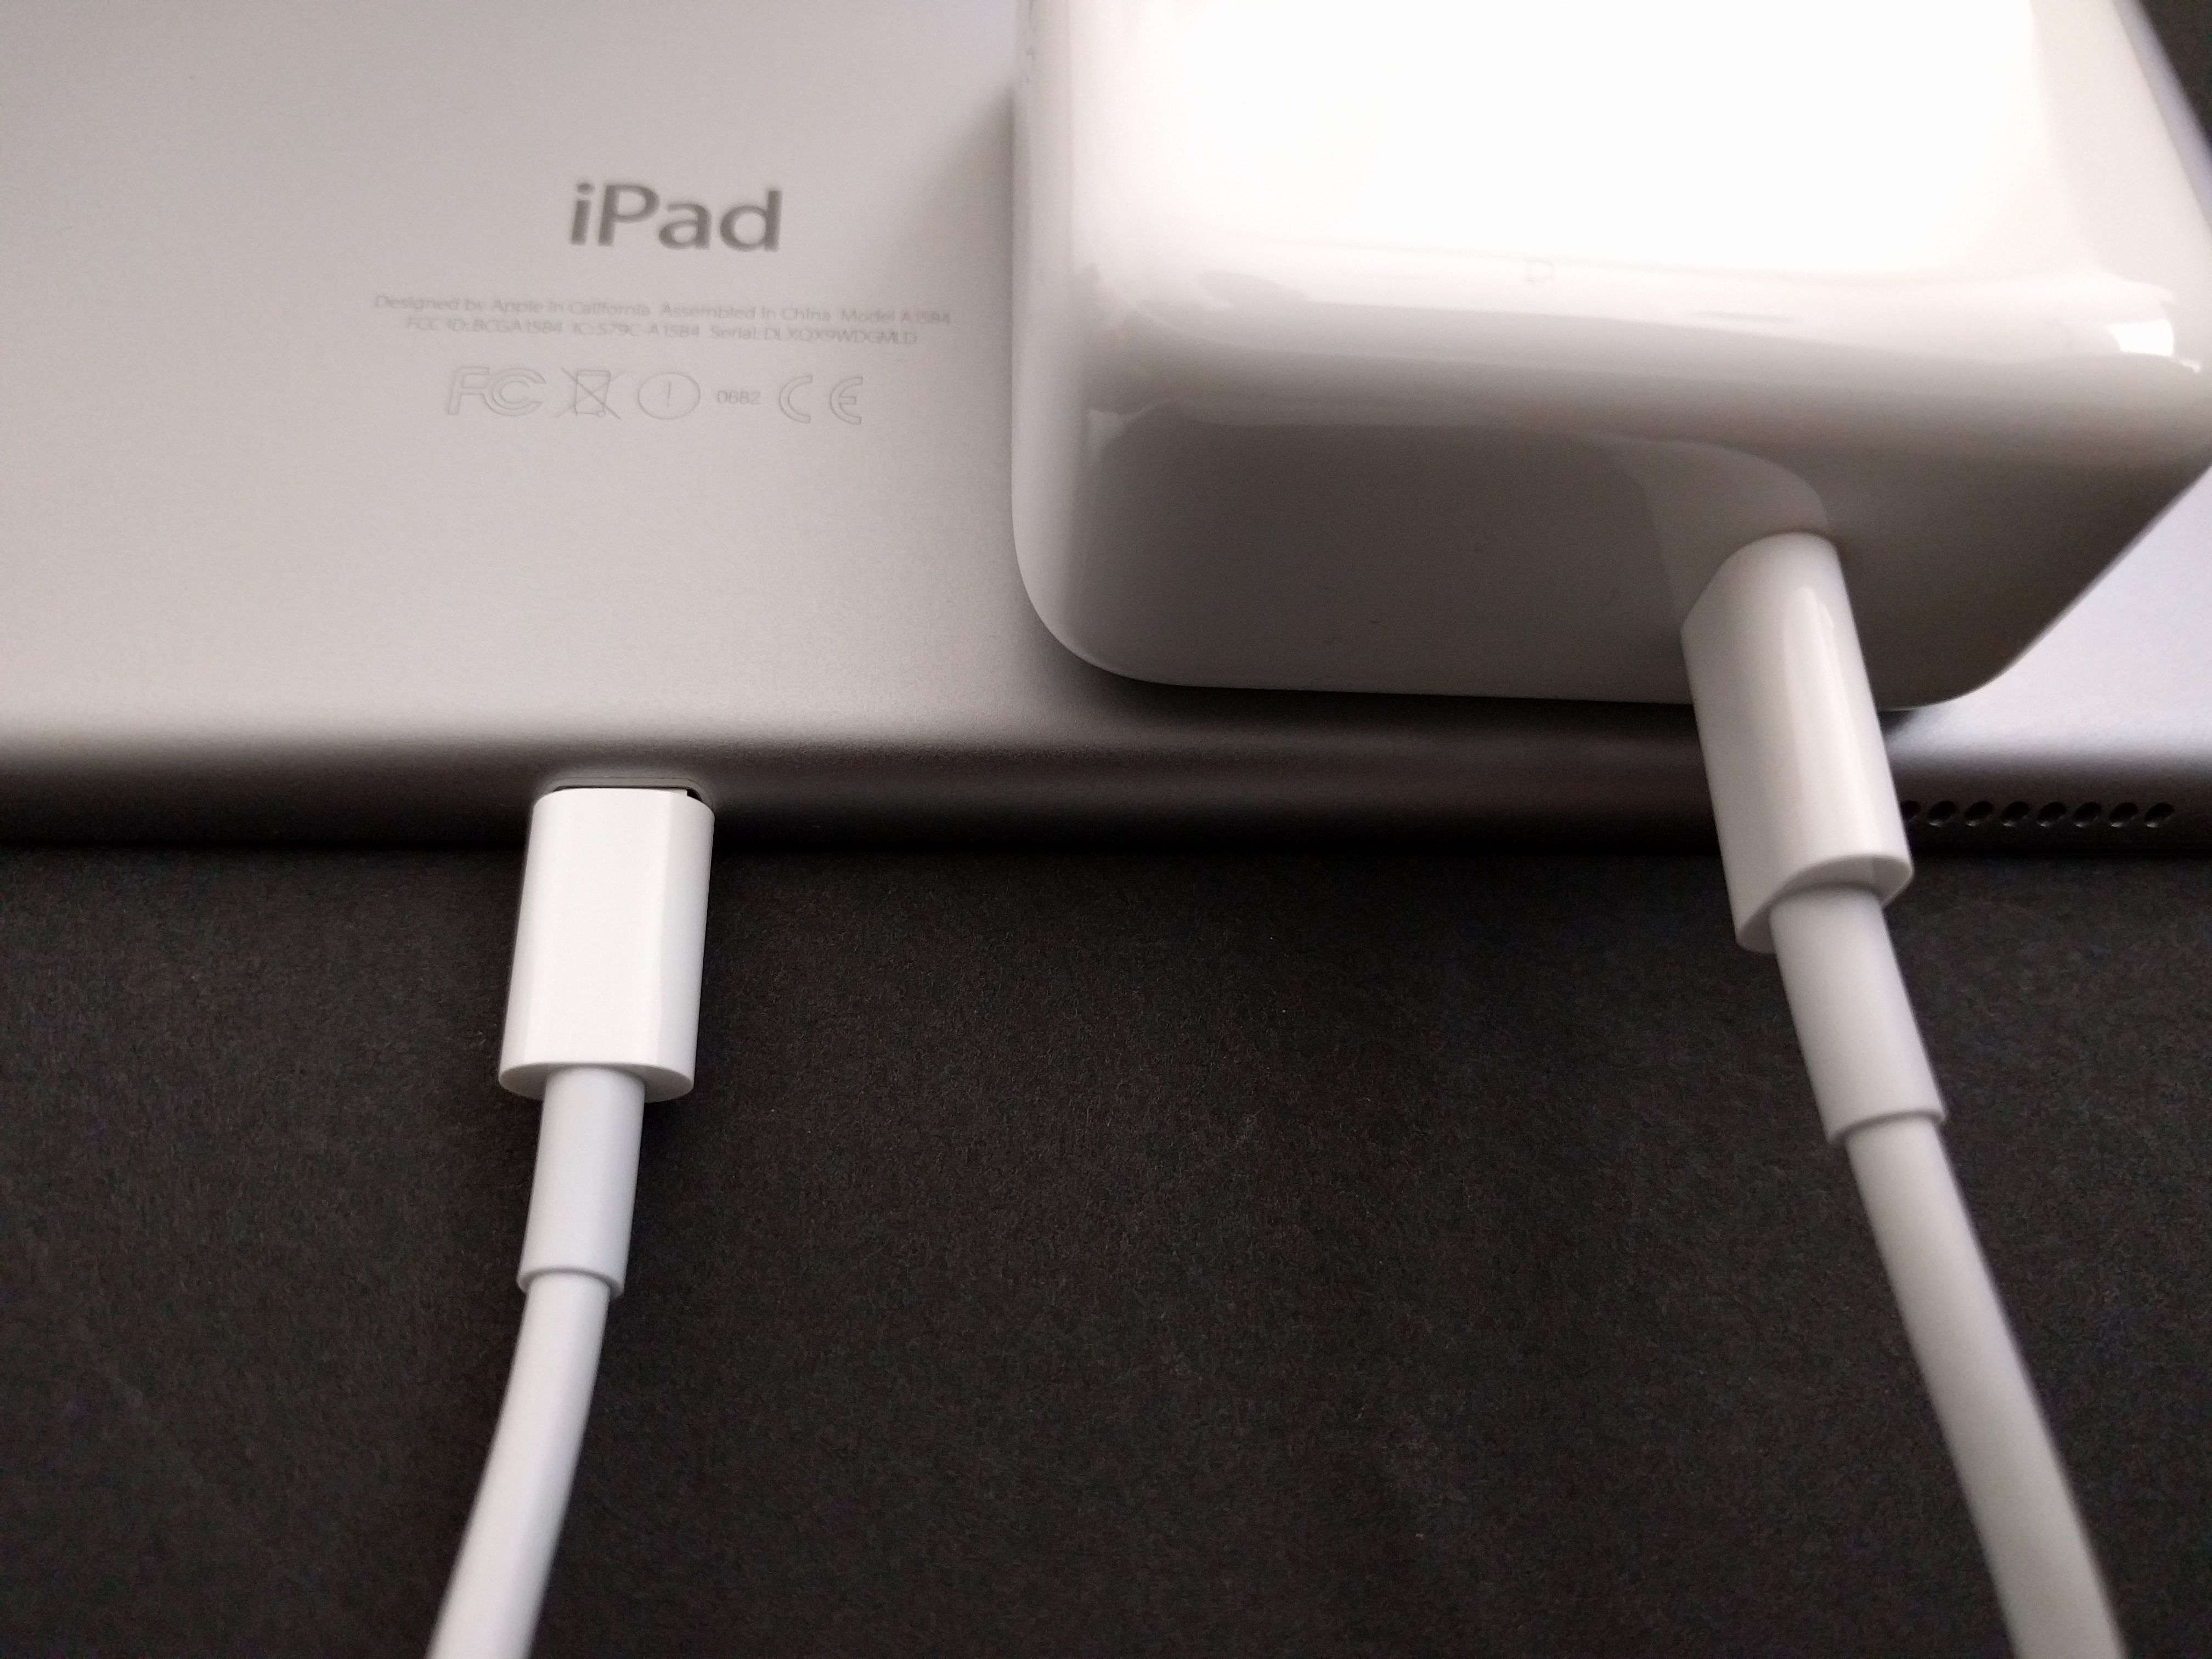 How to Quickly Charge Your iPad Pro Using the Apple 29W USB